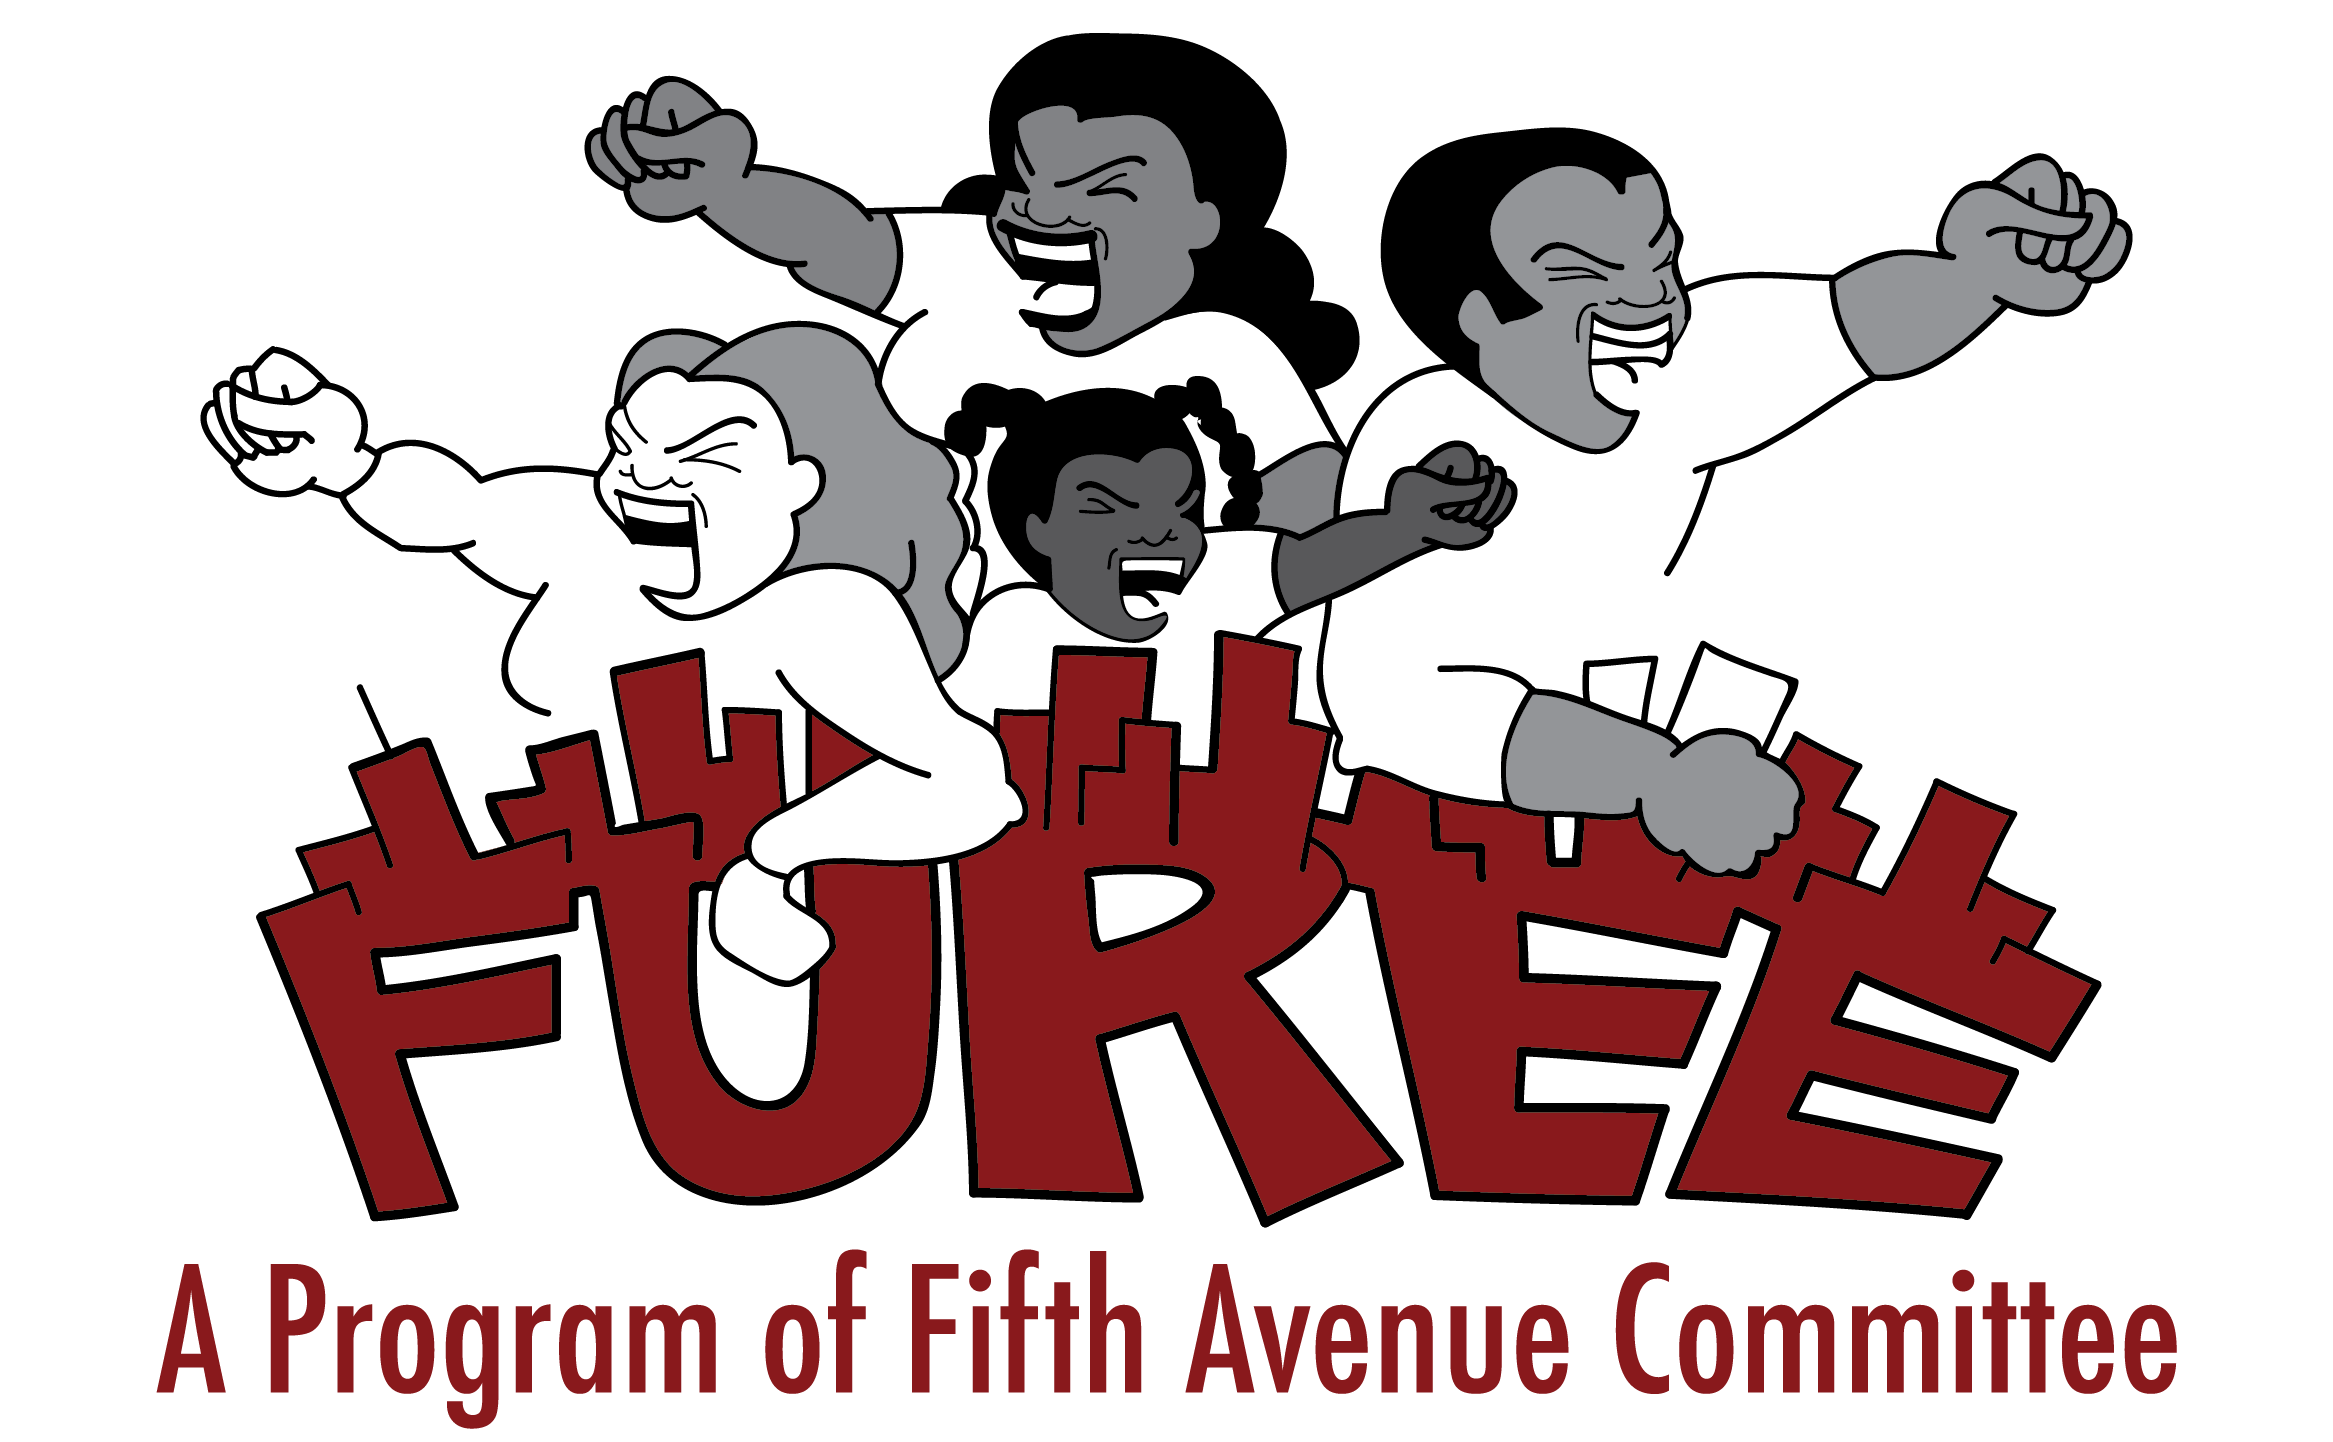 Families United for Racial and Economic Equality (FUREE)